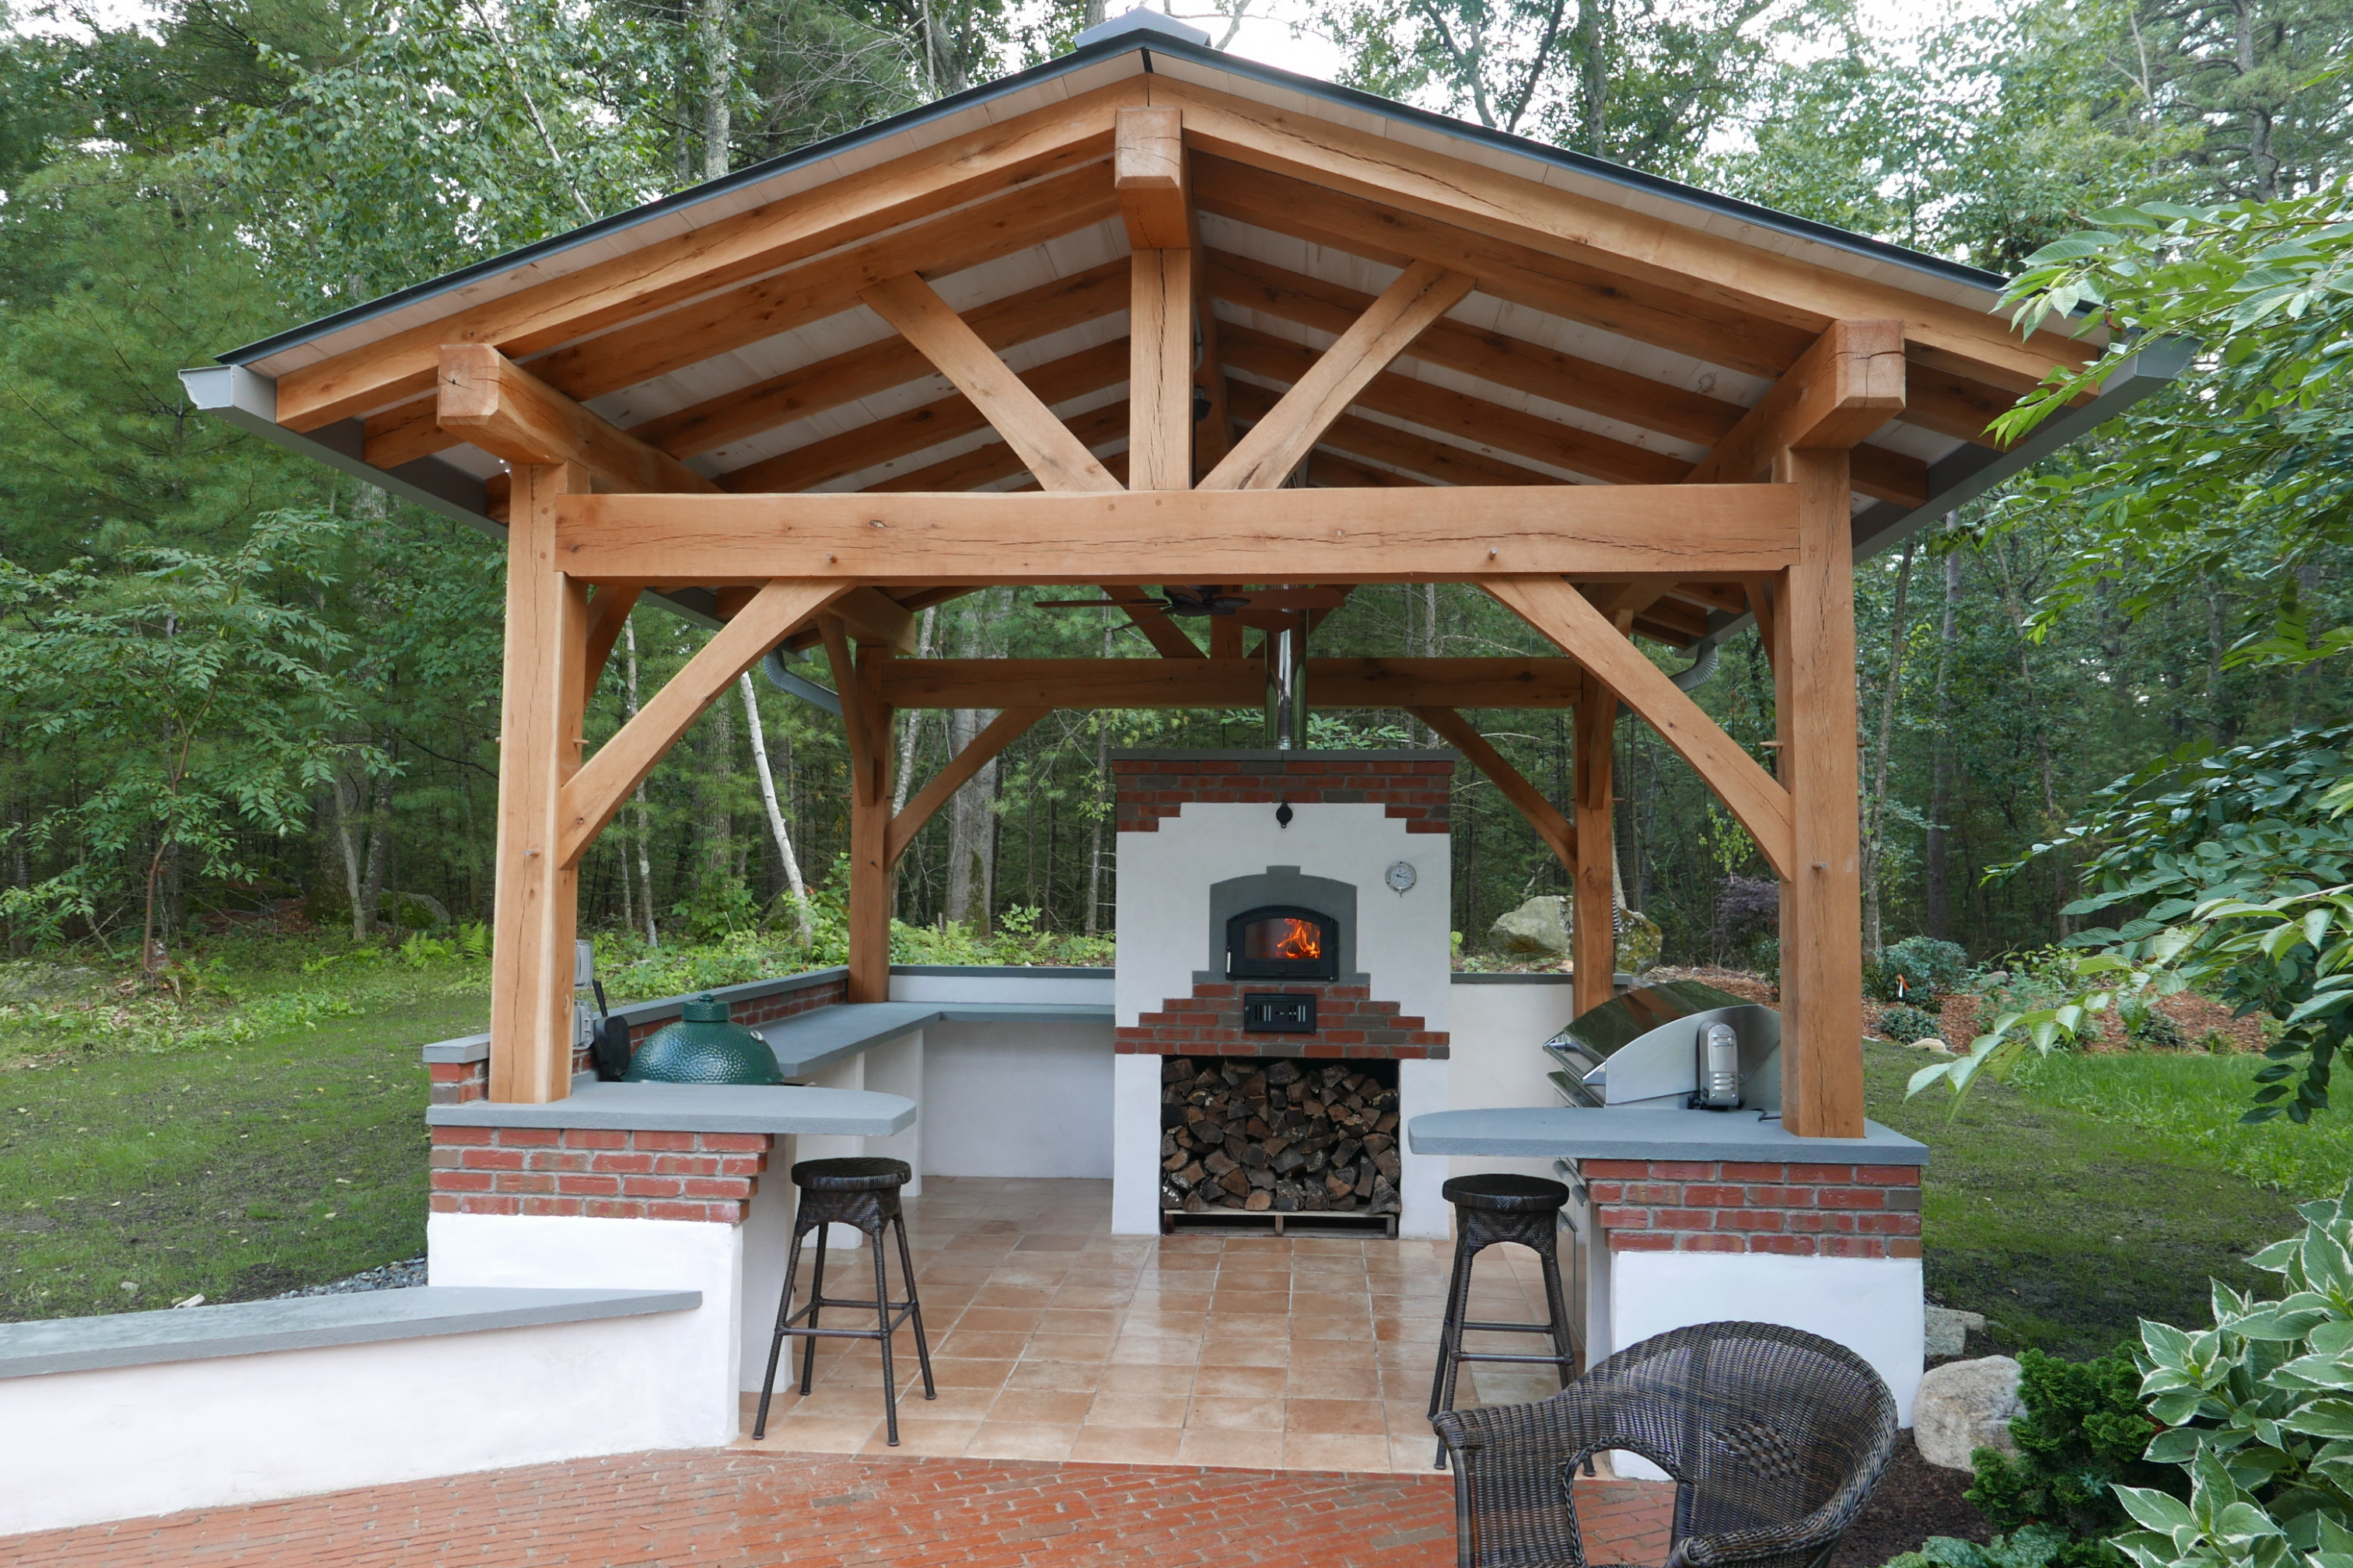 Tag For Metal : Timber Frames Hearth Metal Carport Outdoor ..